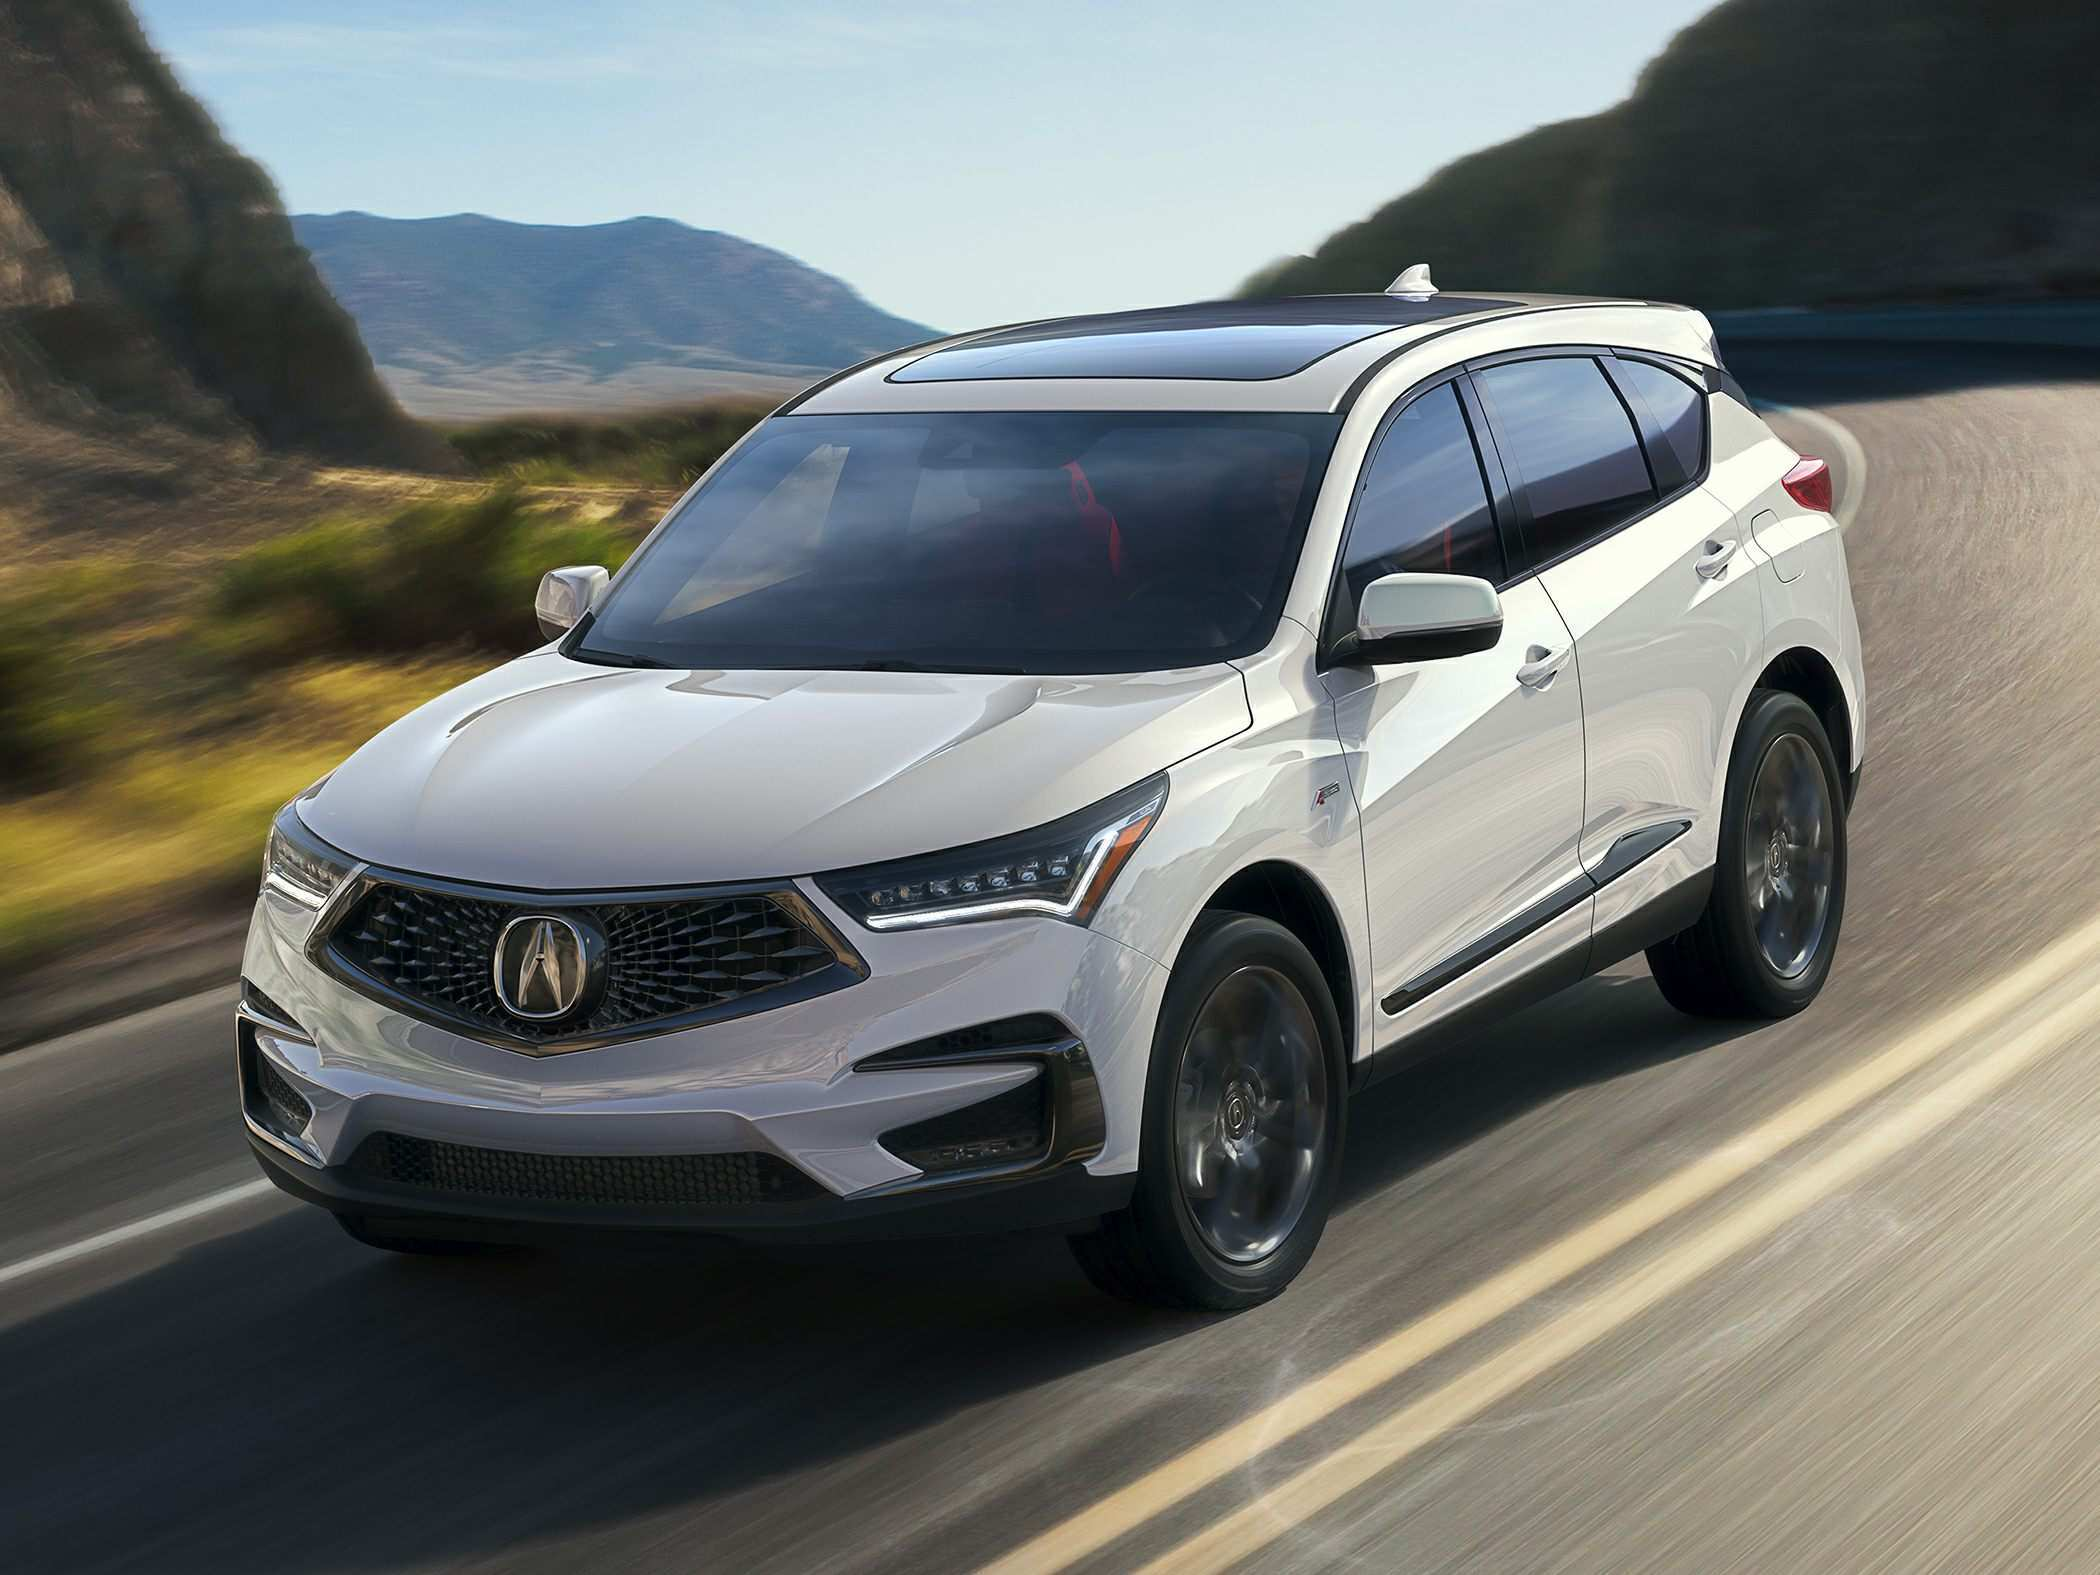 59 All New 2020 Acura Rdx Advance Package Spy Shoot